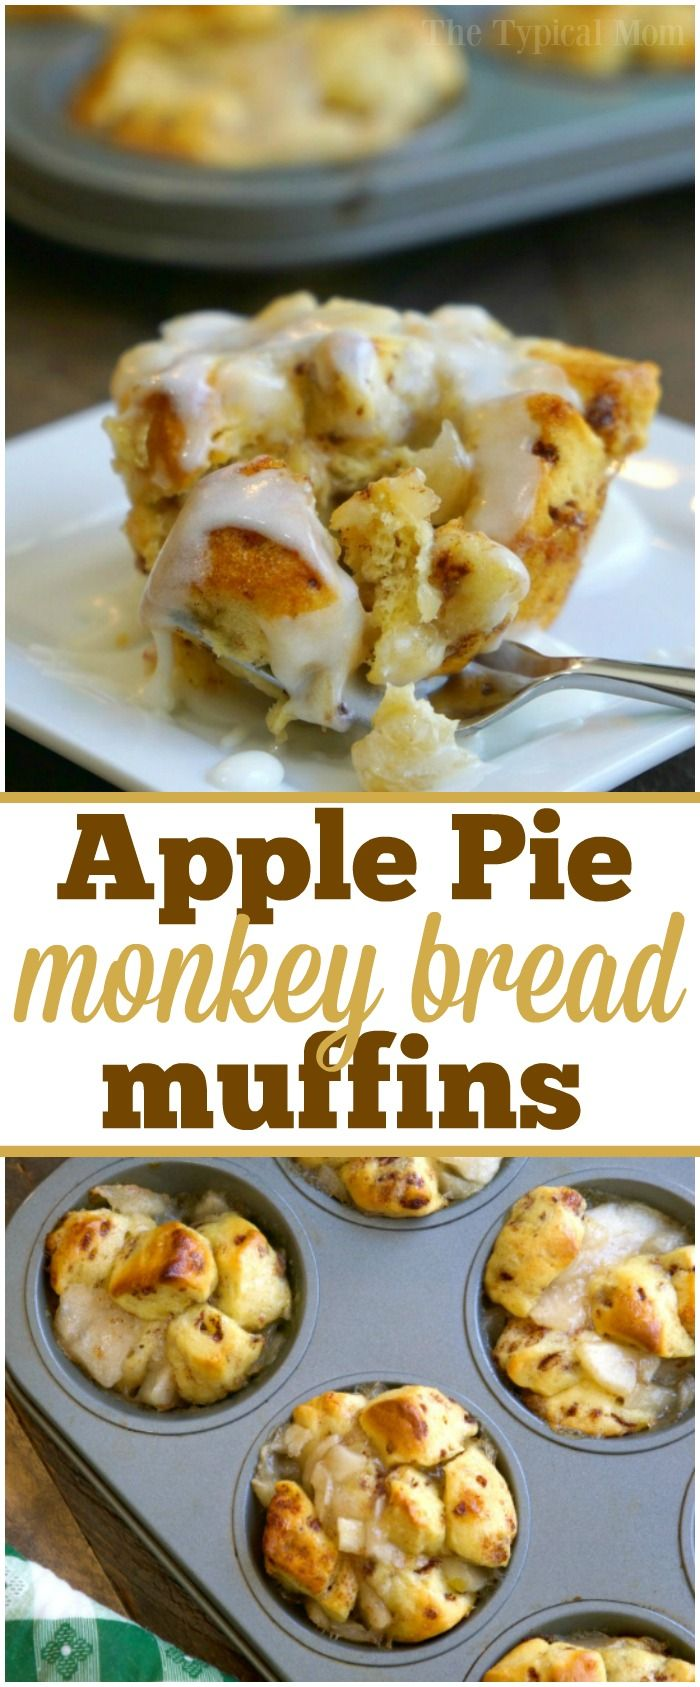 These 2 ingredient apple pie monkey bread muffins are amazing! A quick breakfast or dessert that just takes 15 minutes to make. You've got to try them! via @thetypicalmom